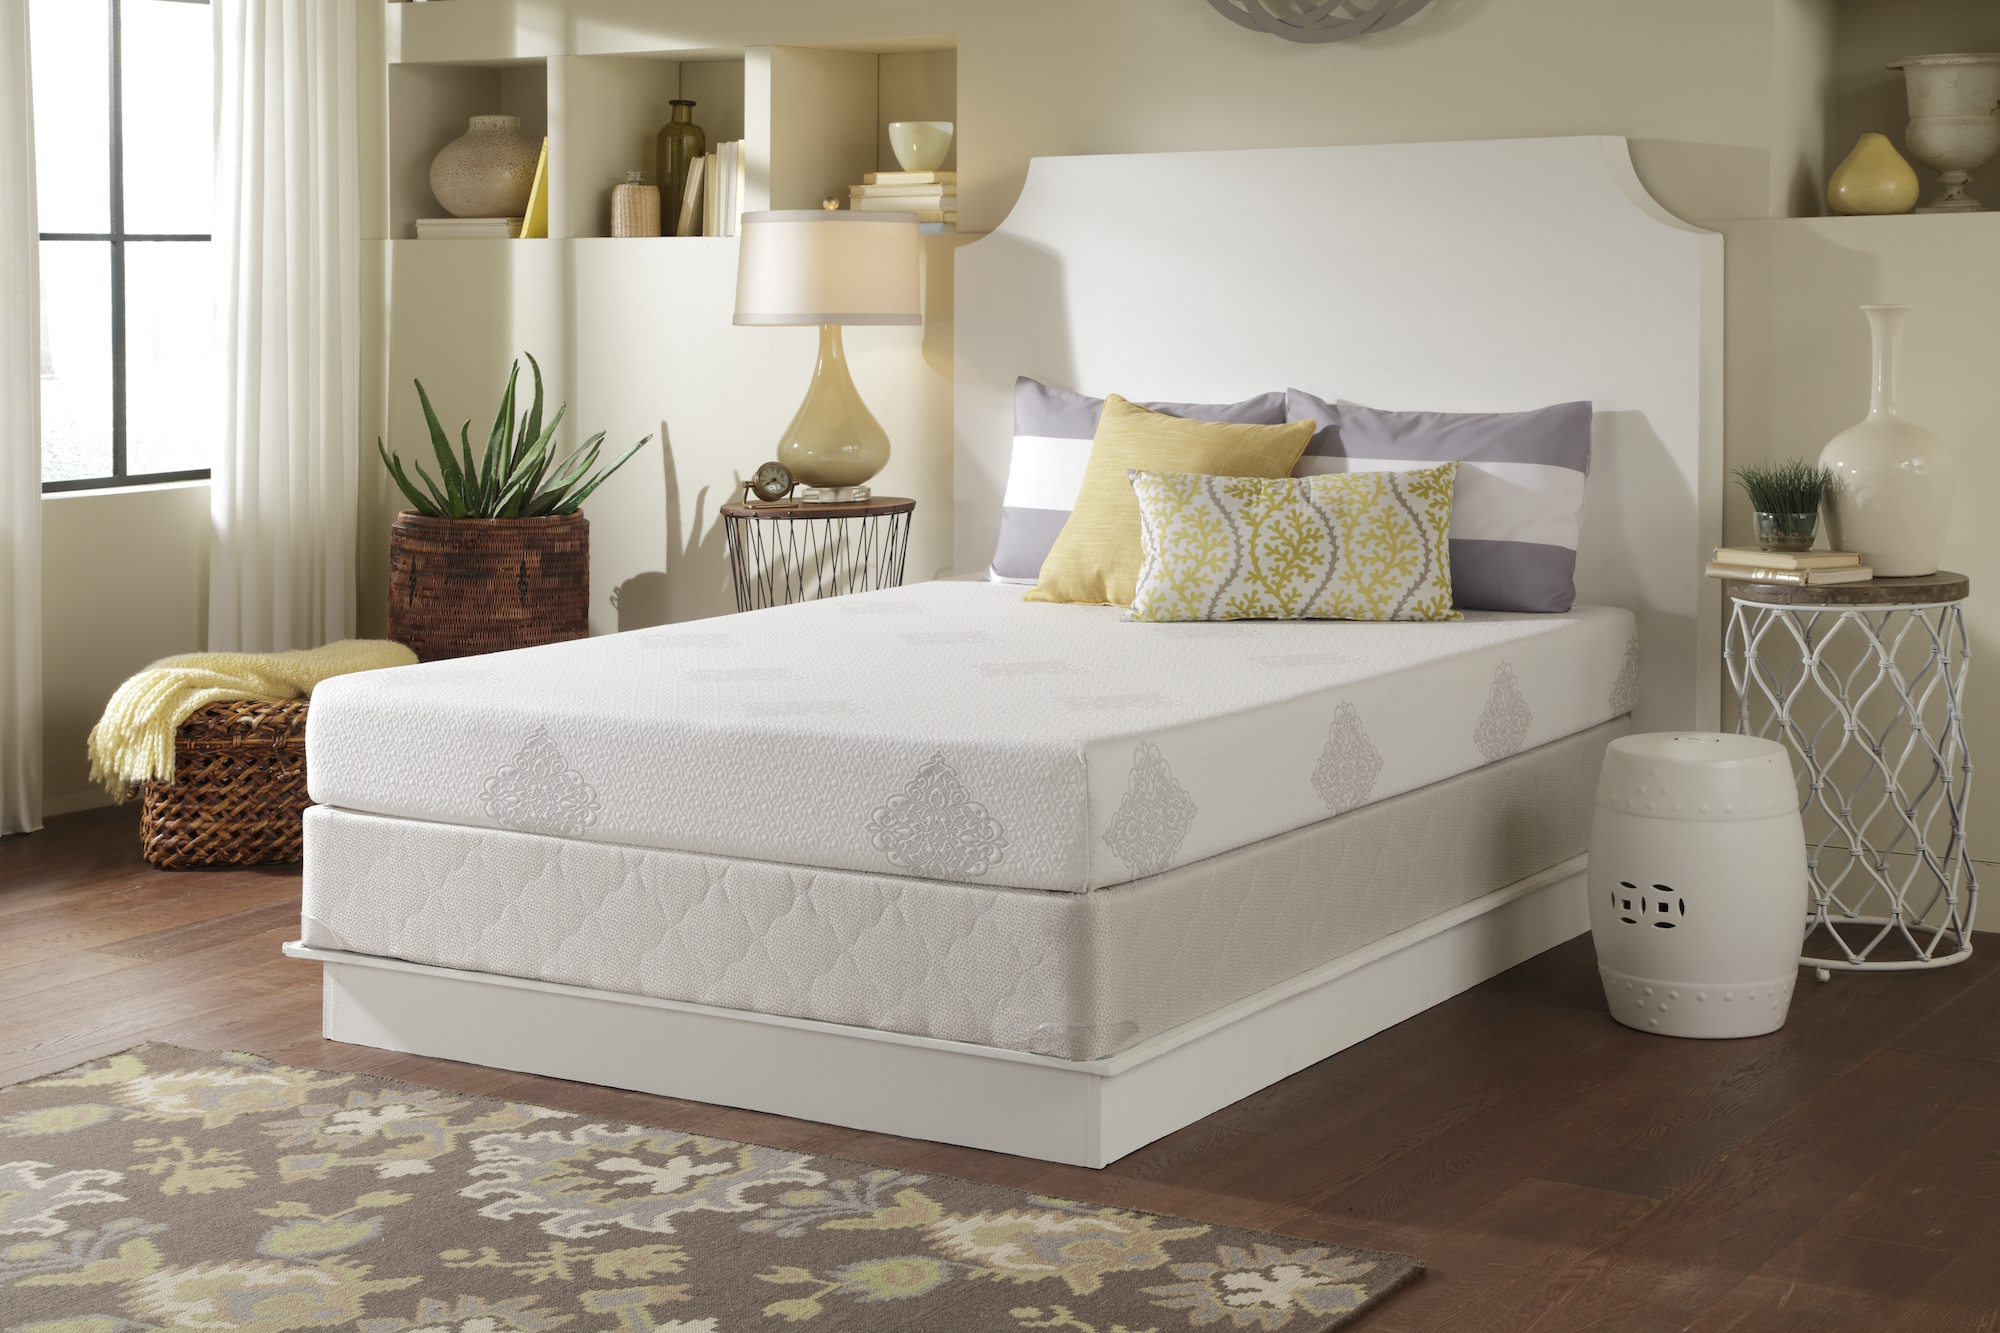 Sealy-Comfort-Series-Gel at Thousand Oaks Mattress